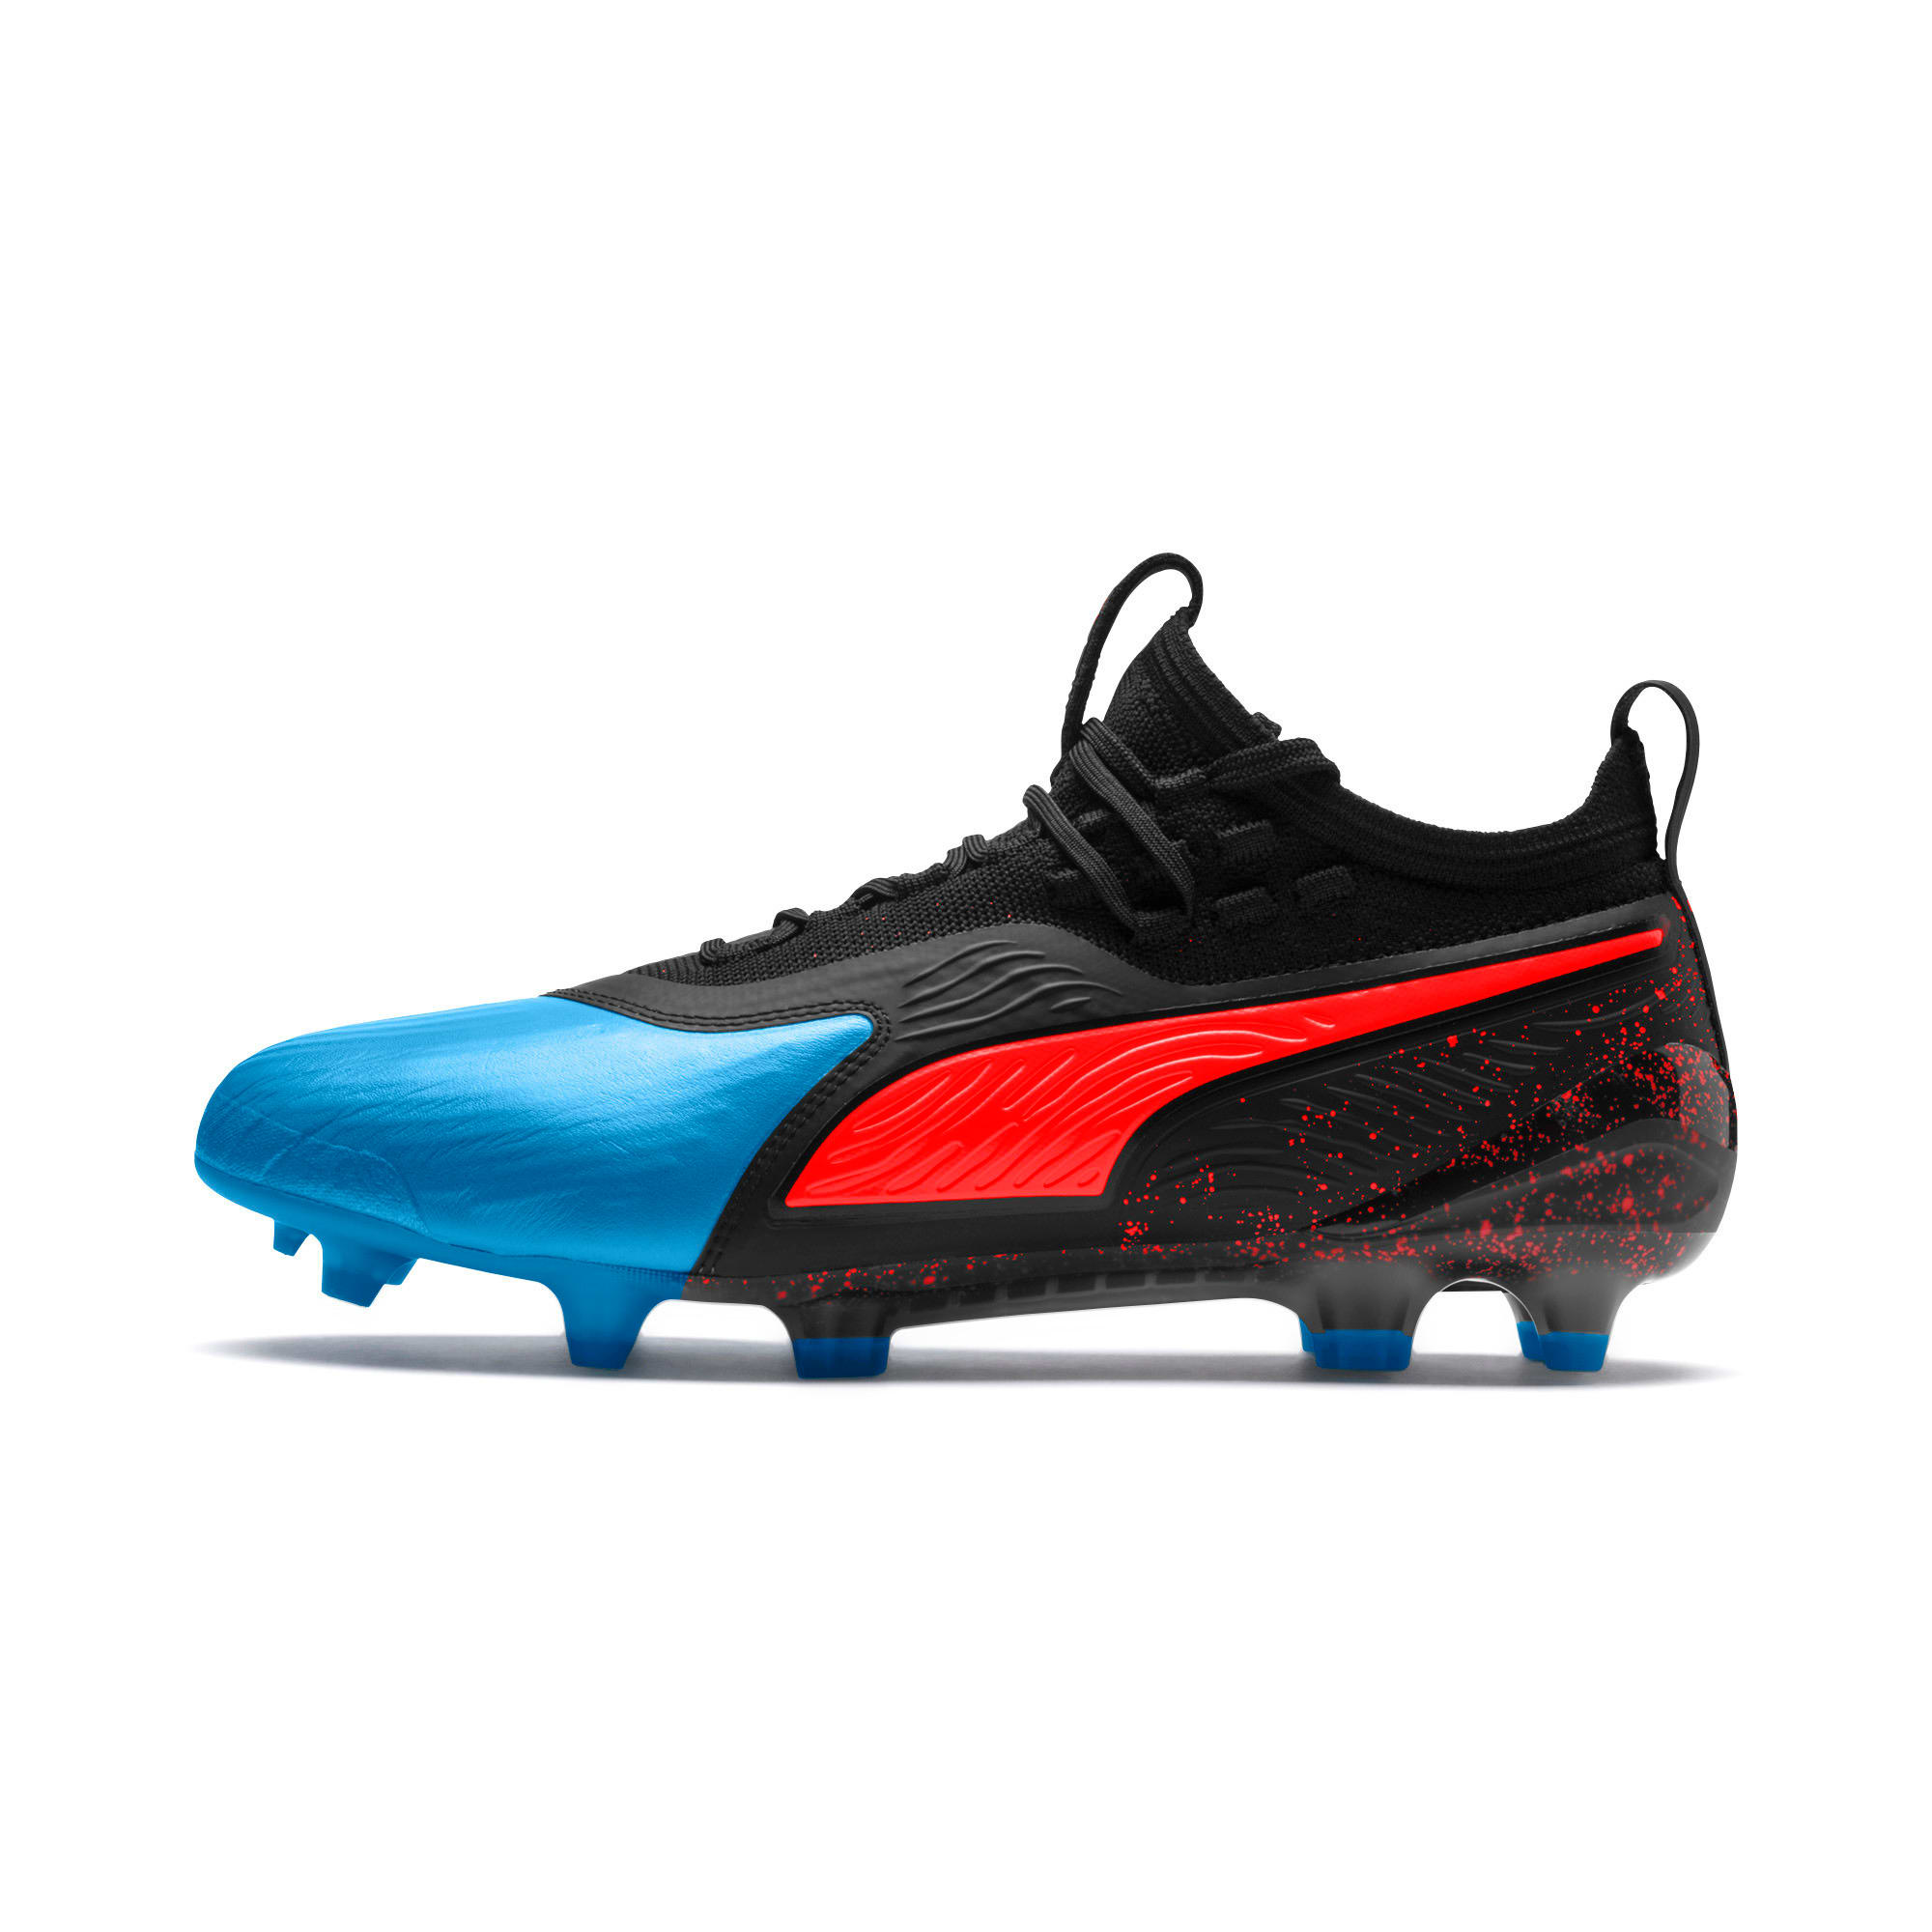 Thumbnail 1 of PUMA ONE 19.1 FG/AG Men's Soccer Cleats, Bleu Azur-Red Blast-Black, medium